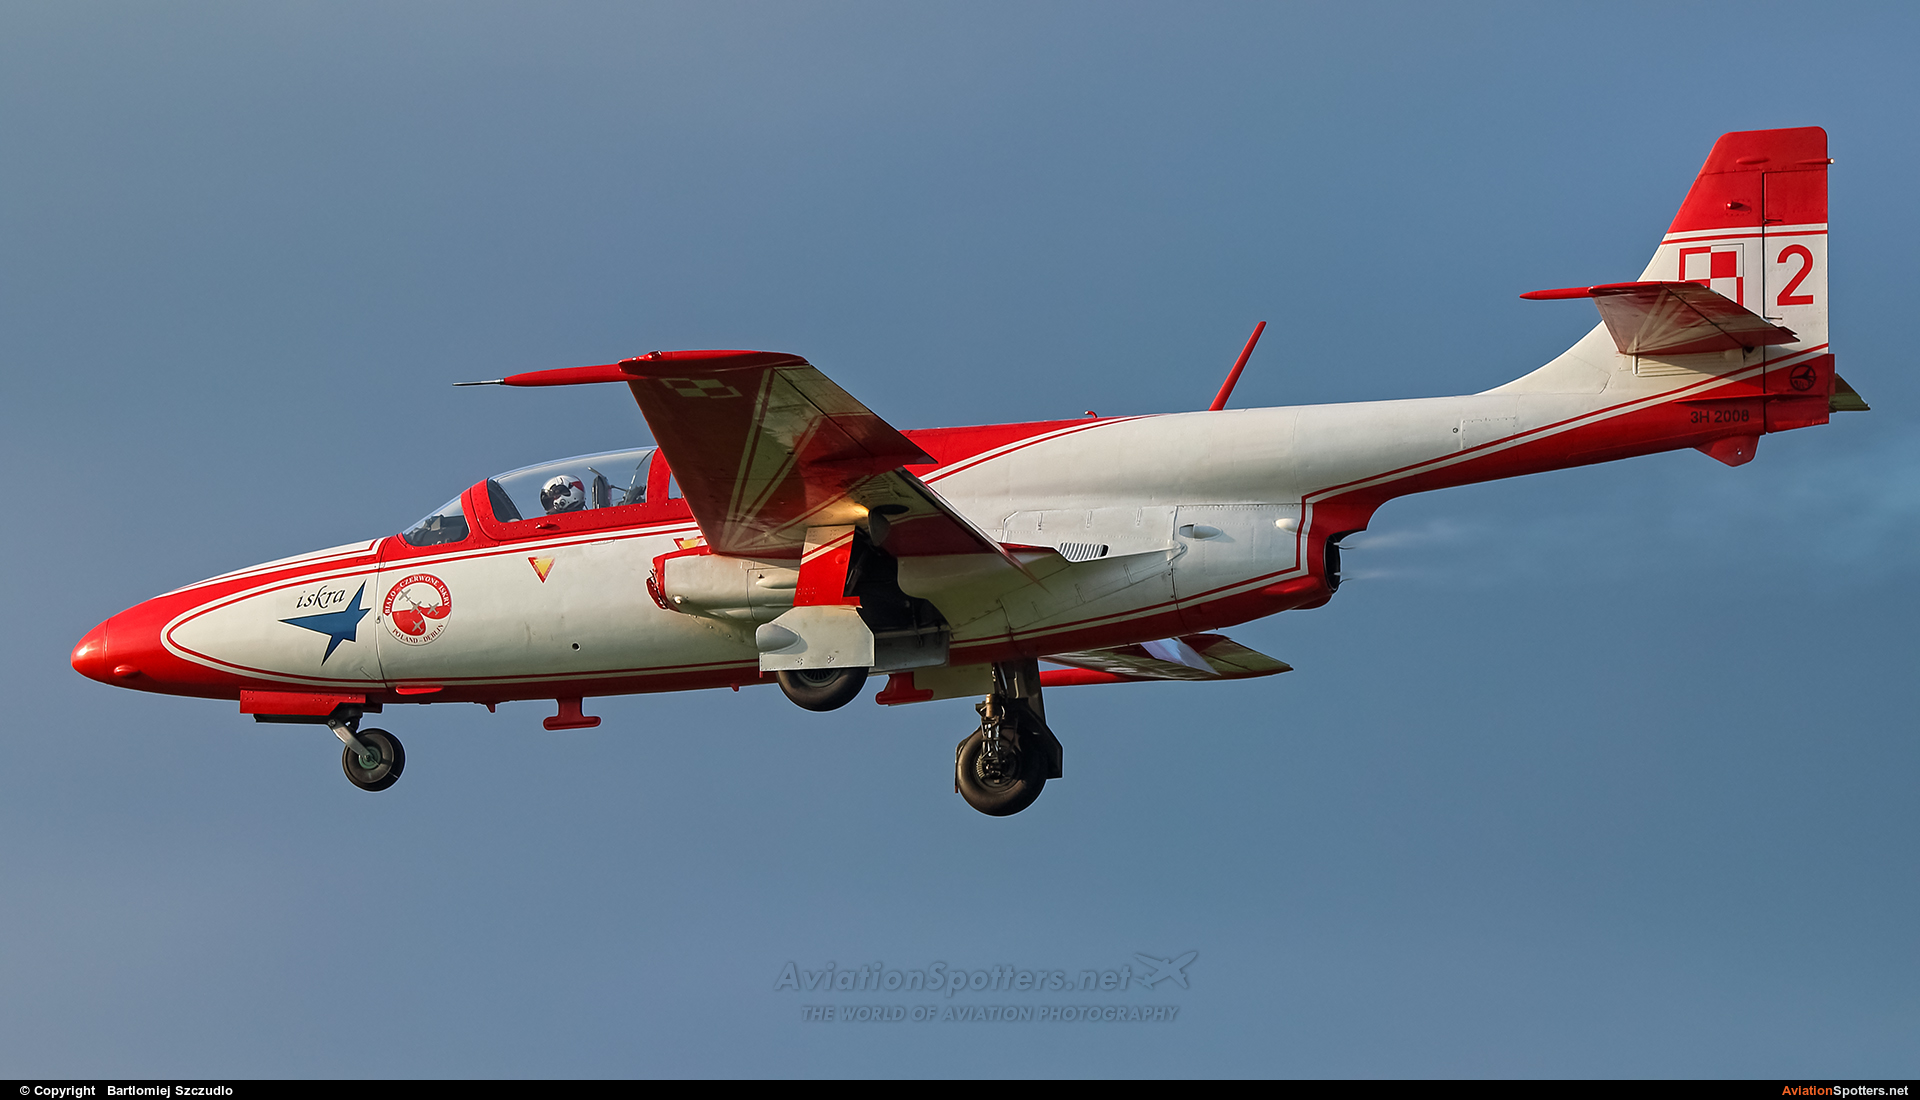 Poland - Air Force: White & Red Iskras  -  TS-11 Iskra  (3H-2008) By Bartlomiej Szczudlo  (BartekSzczudlo)